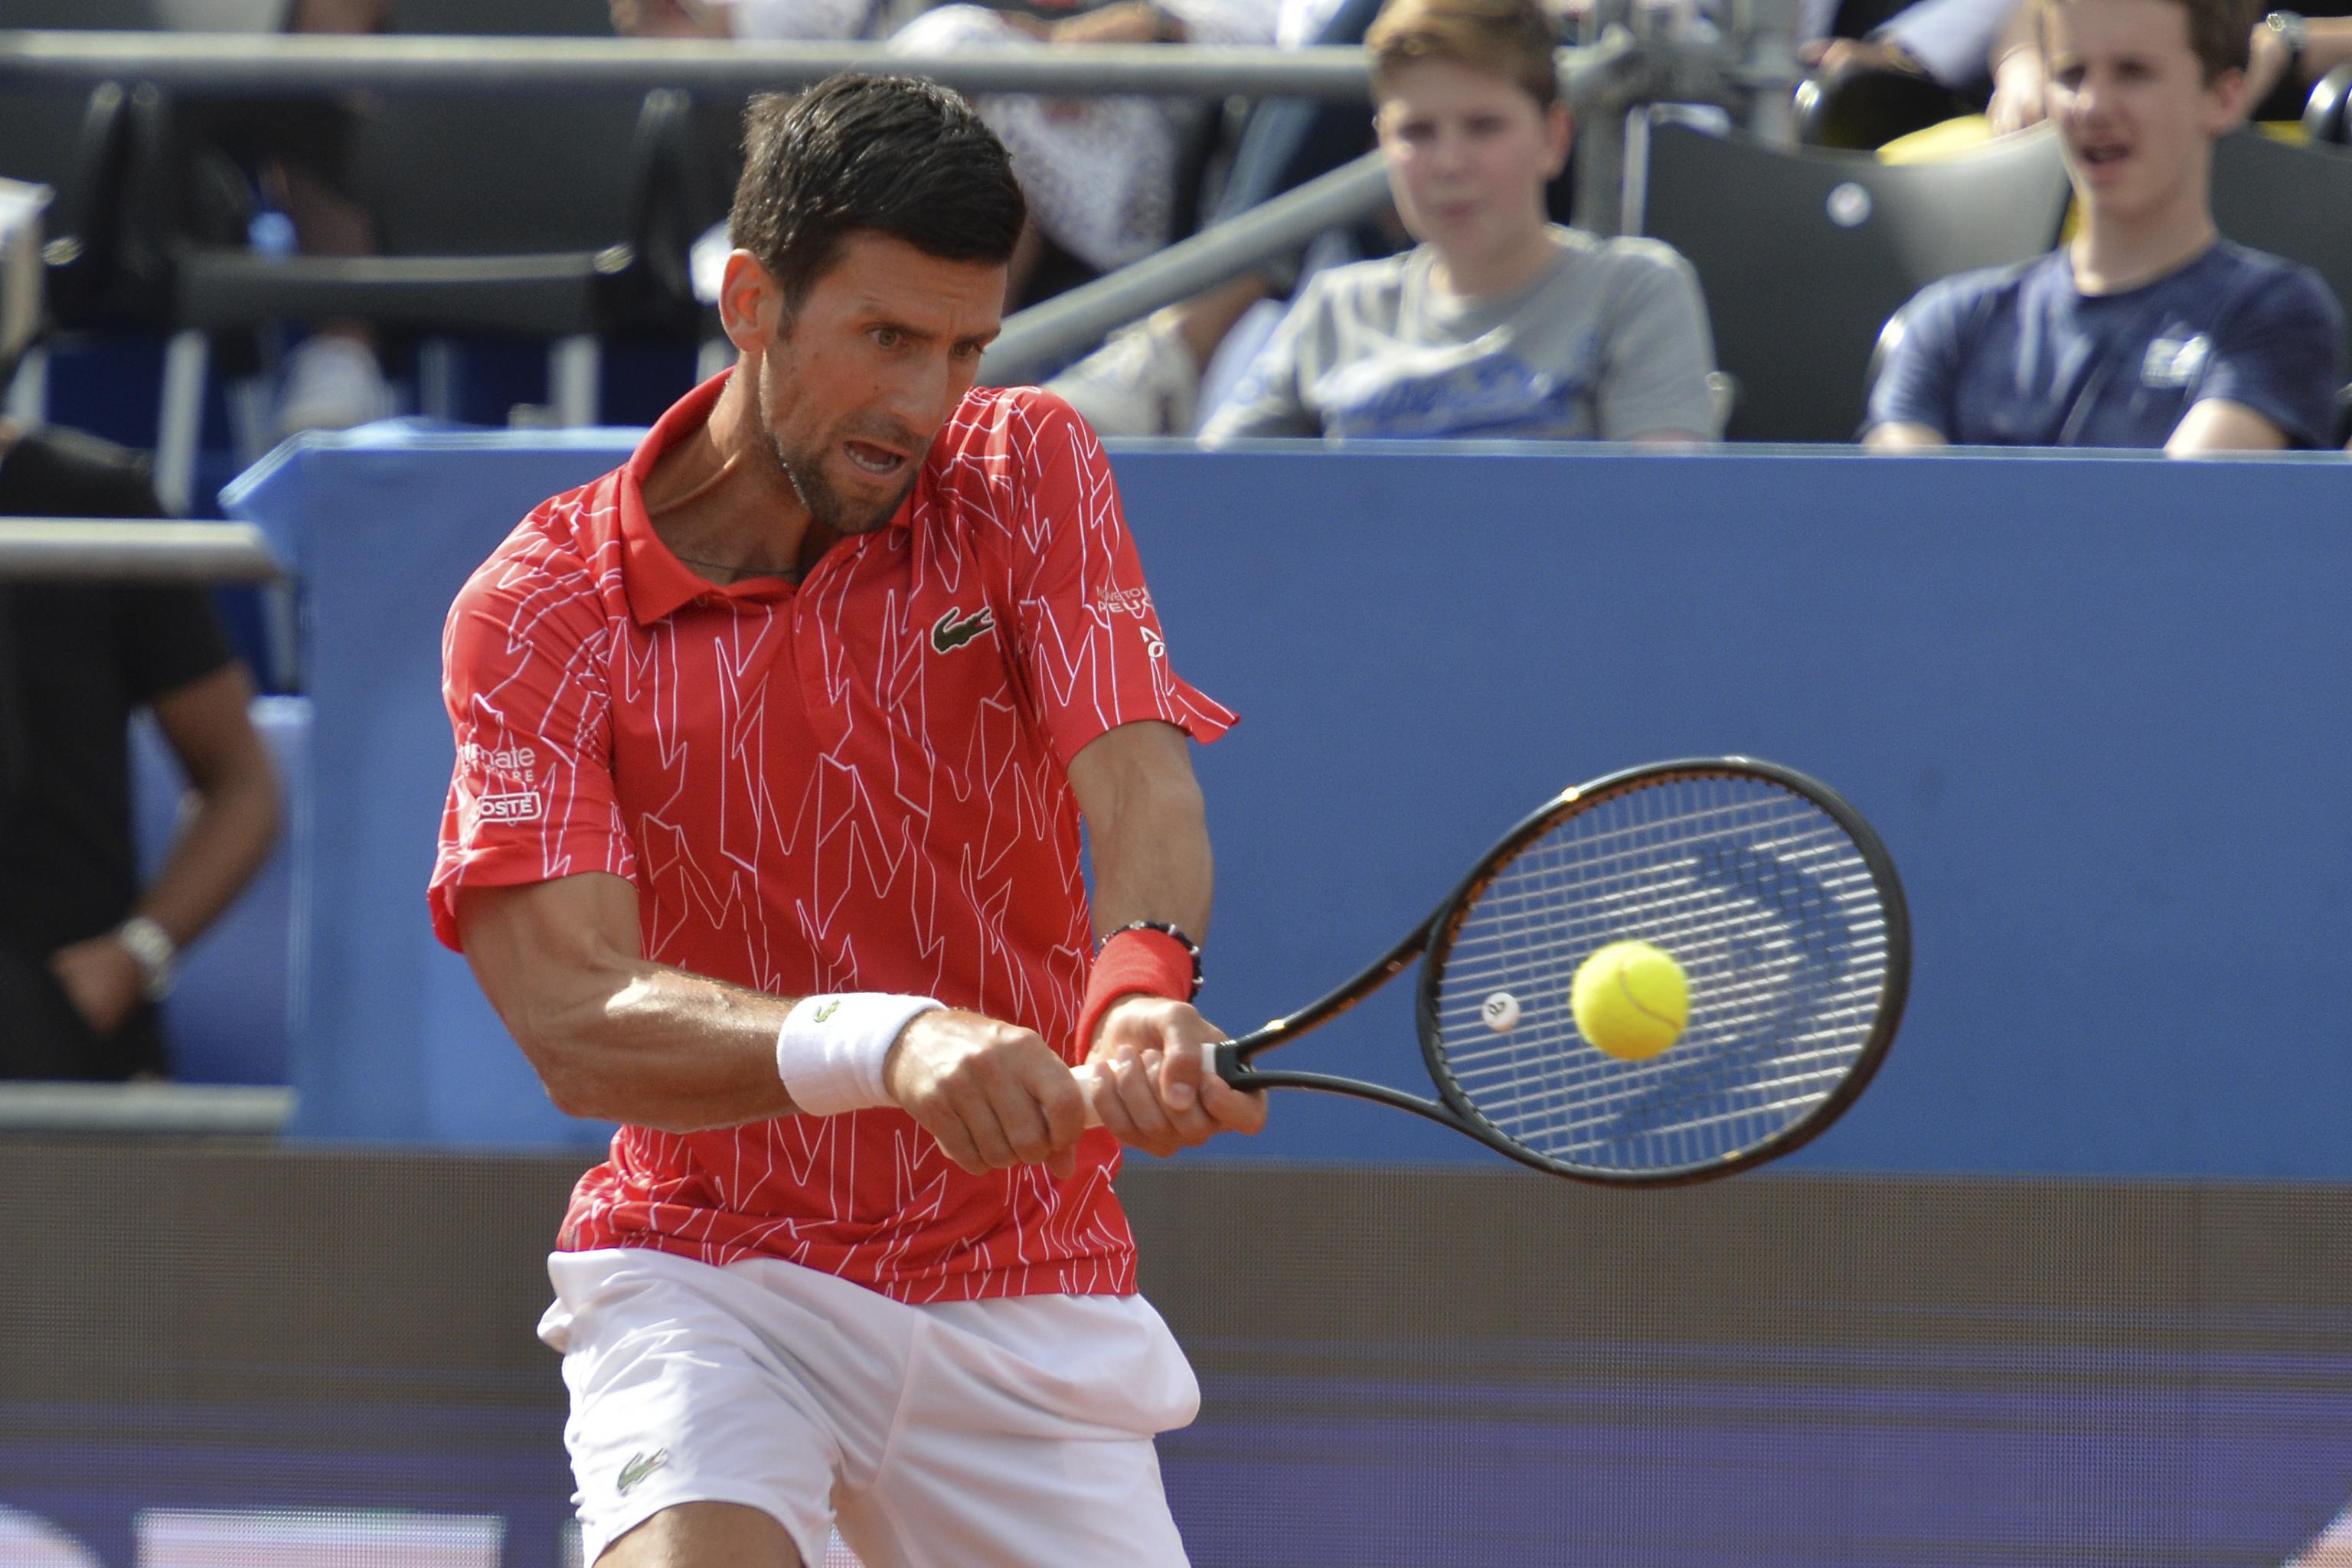 Novak Djokovic Wife Jelena Both Test Positive For Covid 19 In Serbia Bleacher Report Latest News Videos And Highlights